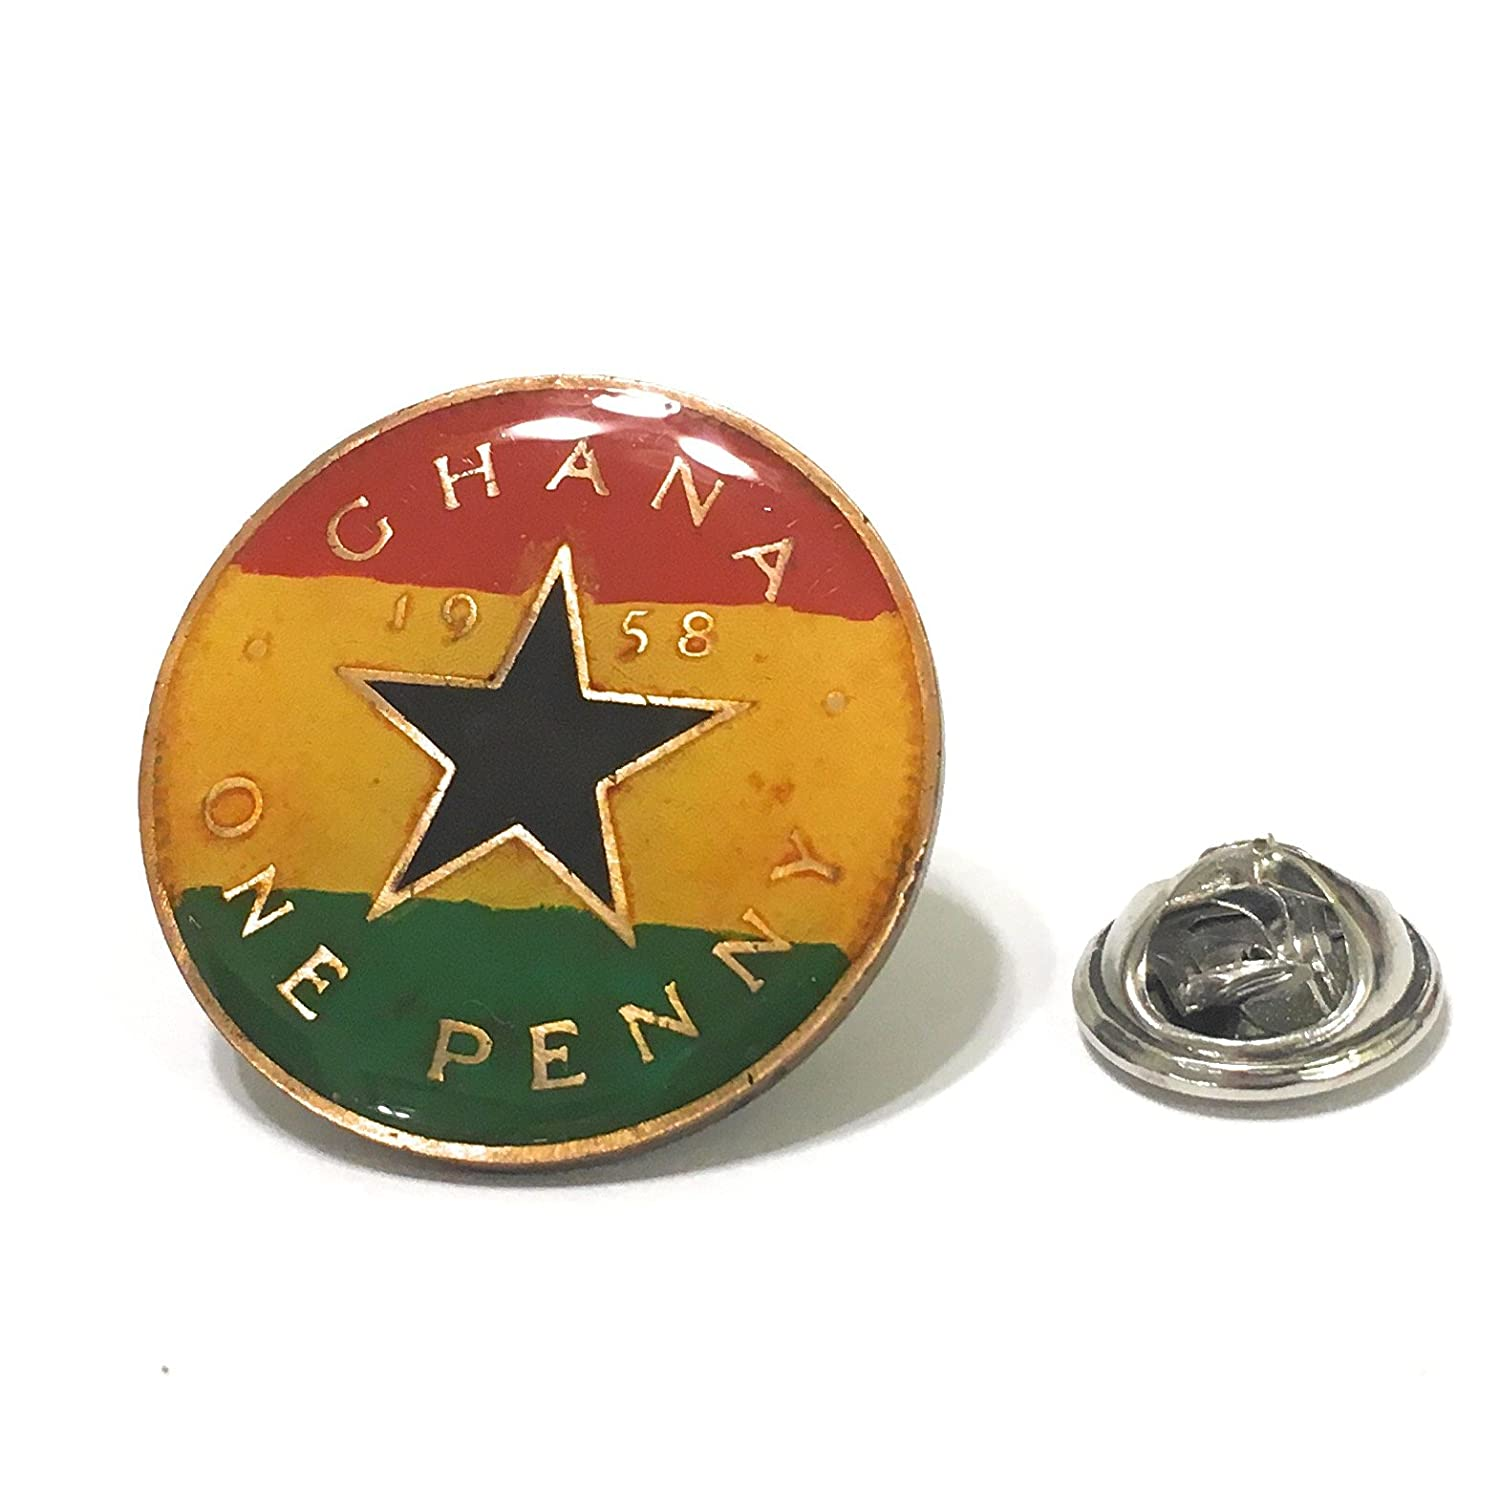 Ghana Coin Lapel Pin Penny Flag Tie Tack Africa African Jewelry Wedding Gift Groom Suit